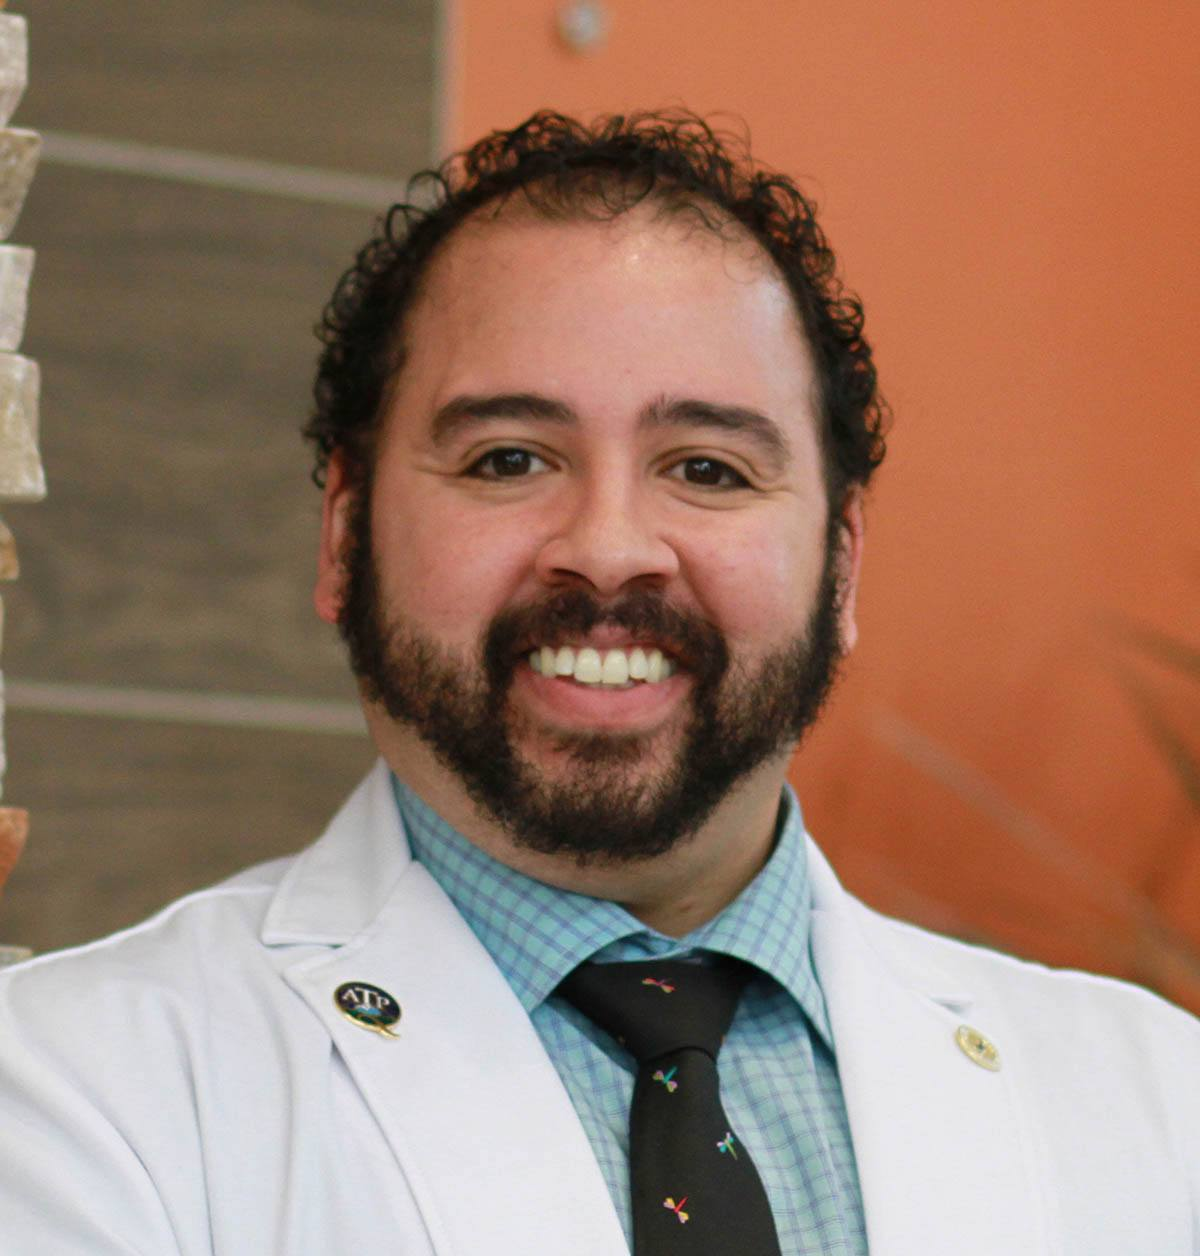 Dr. Alan Michael Vargas Chosen as the 2020 Colorado Family Physician of the Year